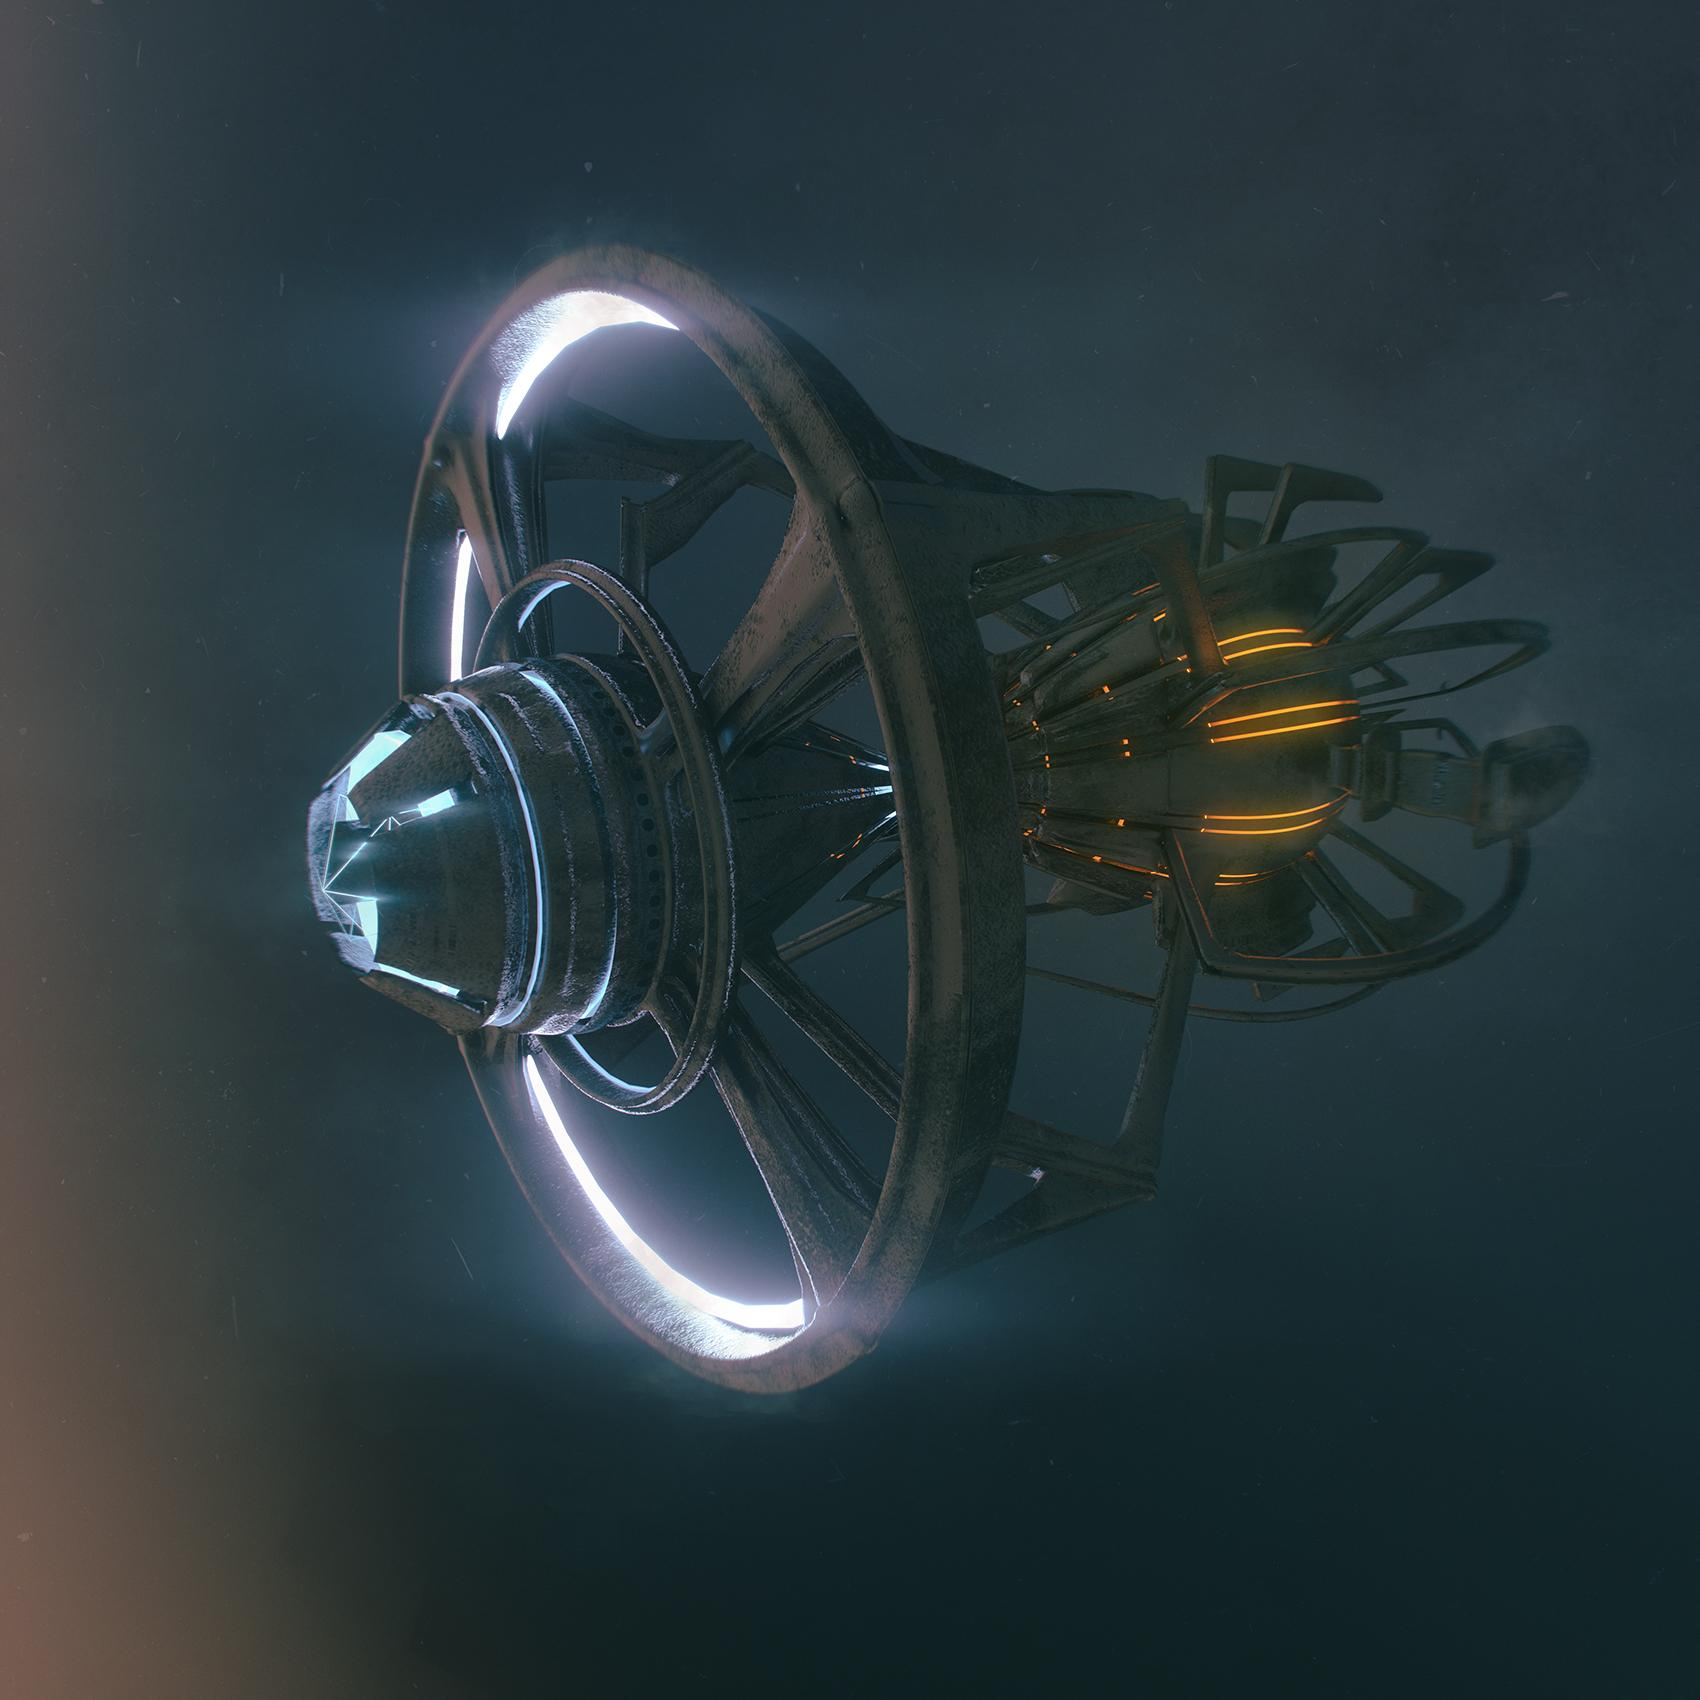 Space And Scifi Things With Zmodeler: Scifi Things A Day